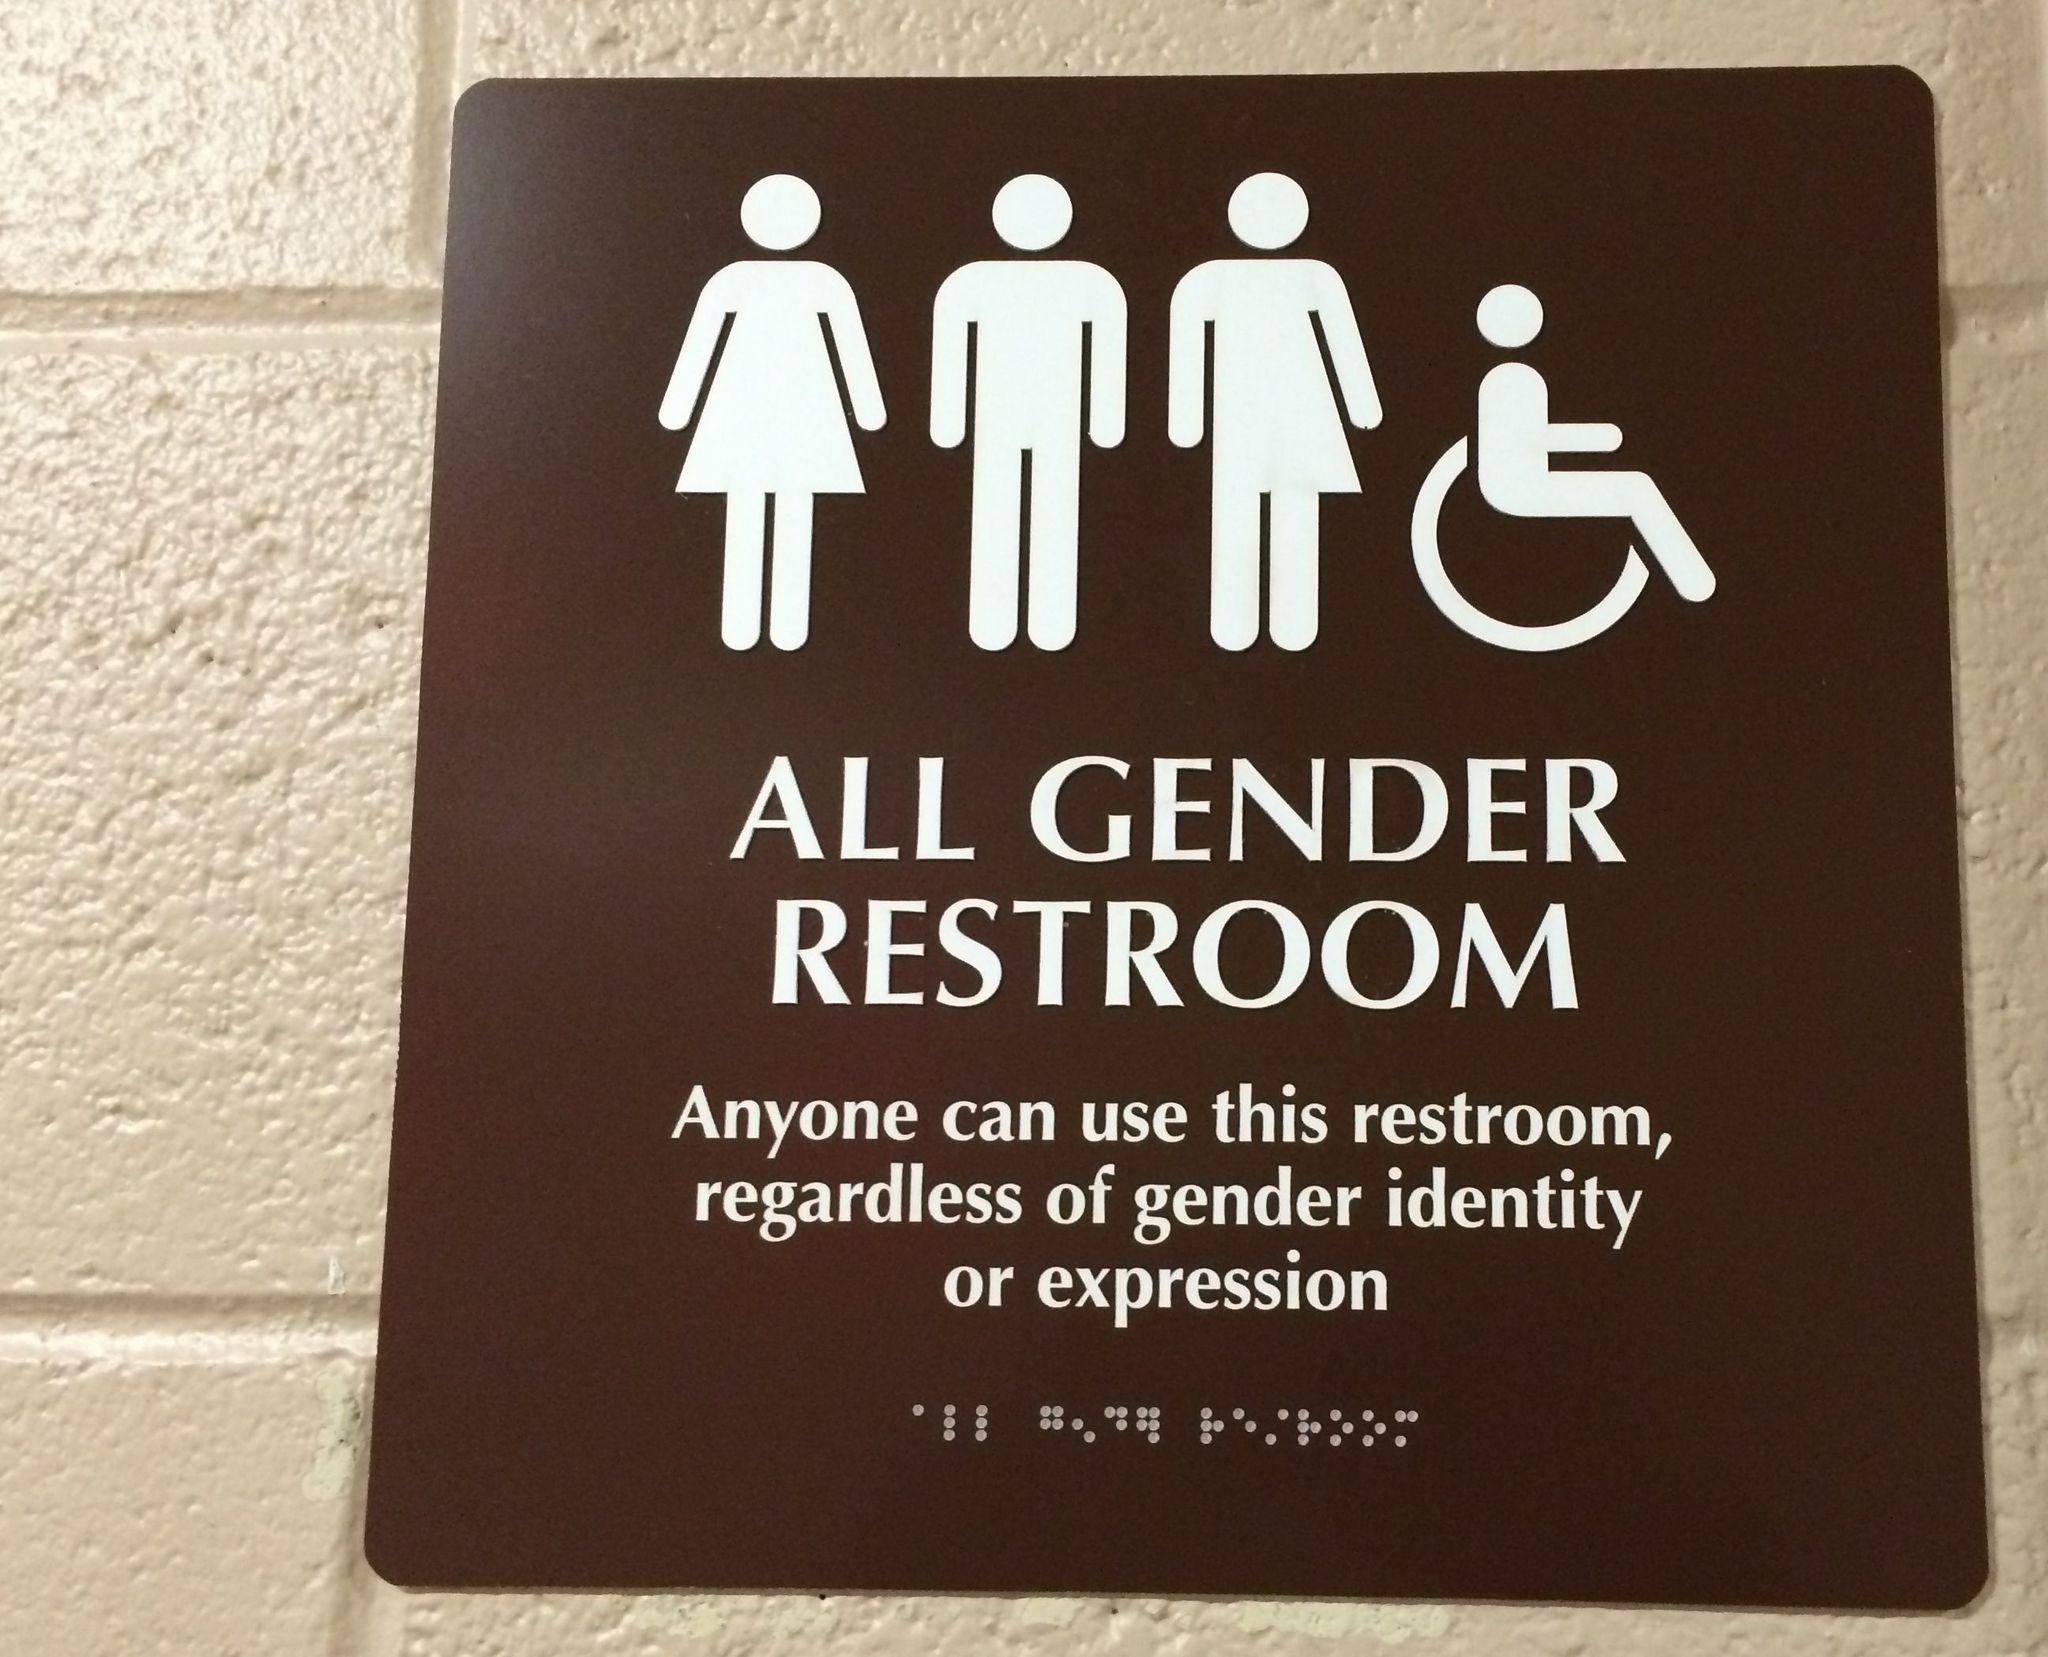 transgender rights under debate in pascack valley schools | nj